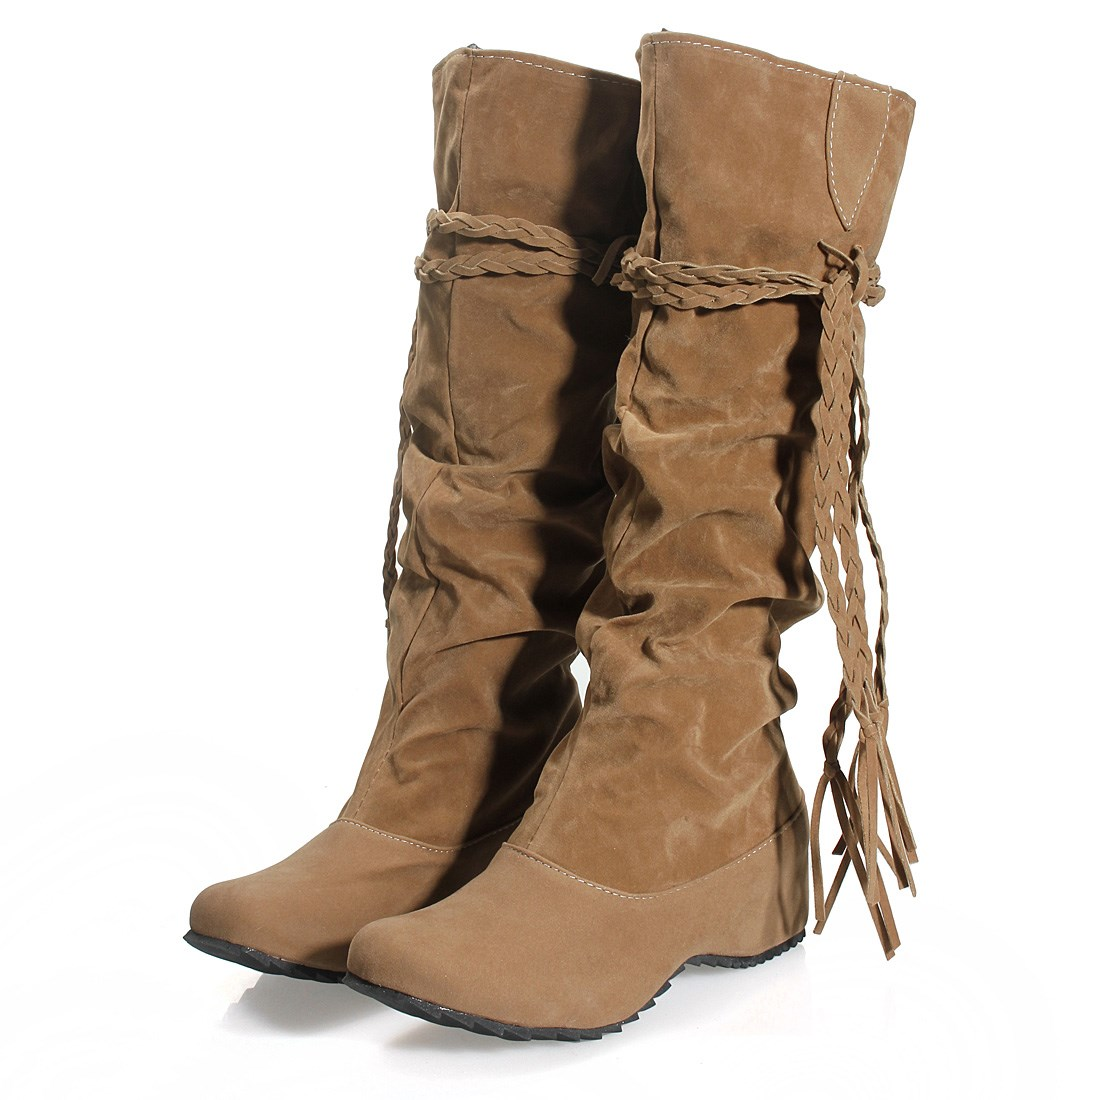 Knee High Leather Boots Lace Up   Homewood Mountain Ski Resort